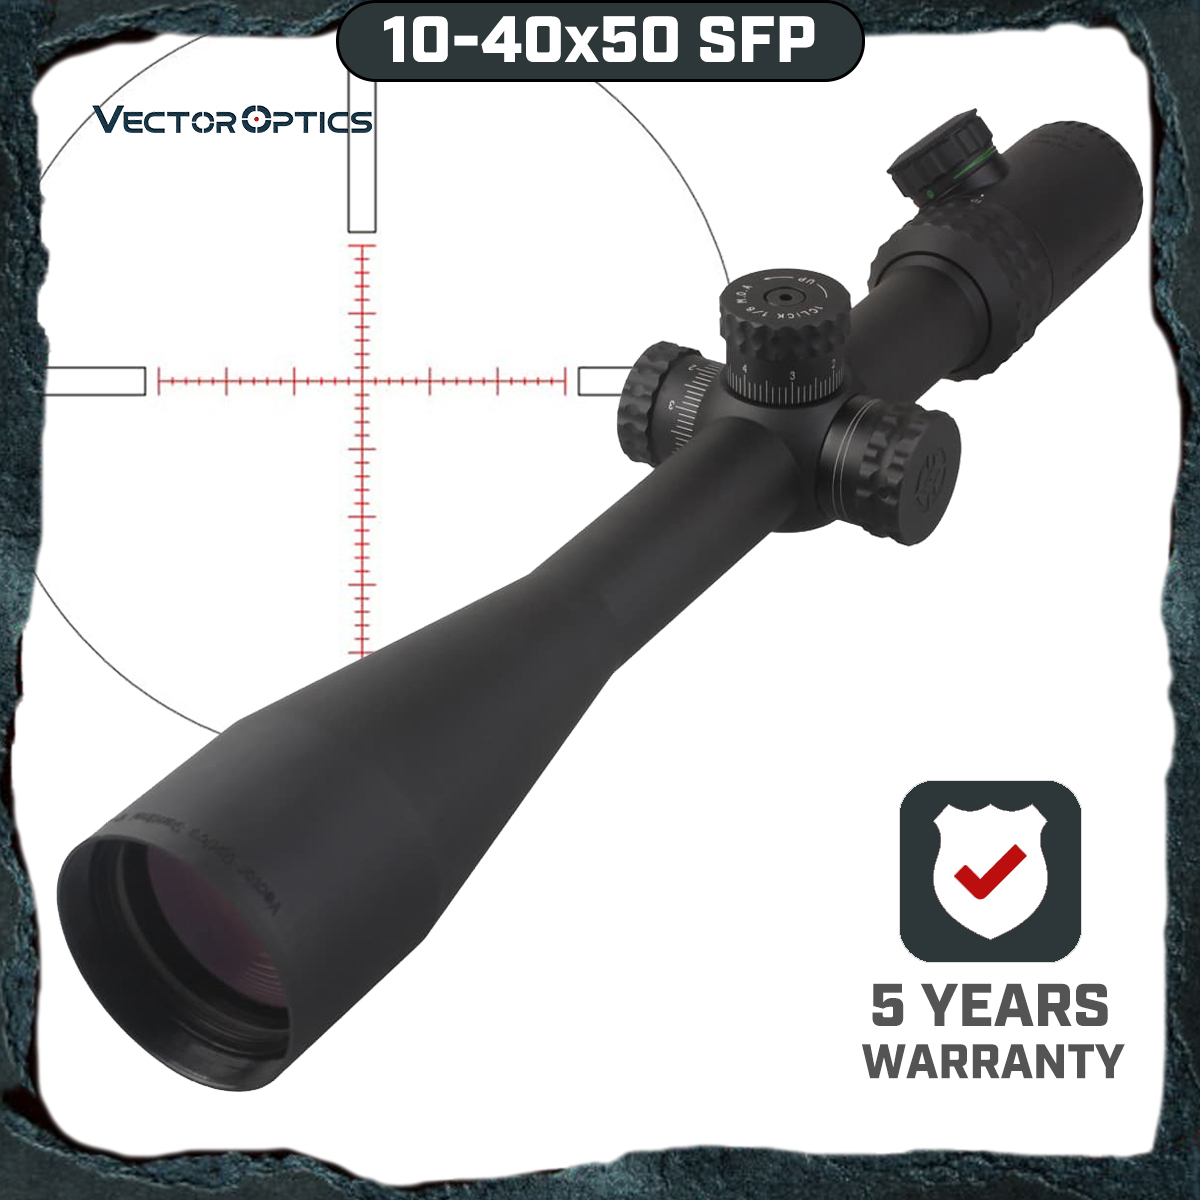 Vector Optics Gen 2 Sentinel 10-40x50 Shooting Sniper Riflescope Scope With Illuminated MP Reticle For Dear Sight Hunting